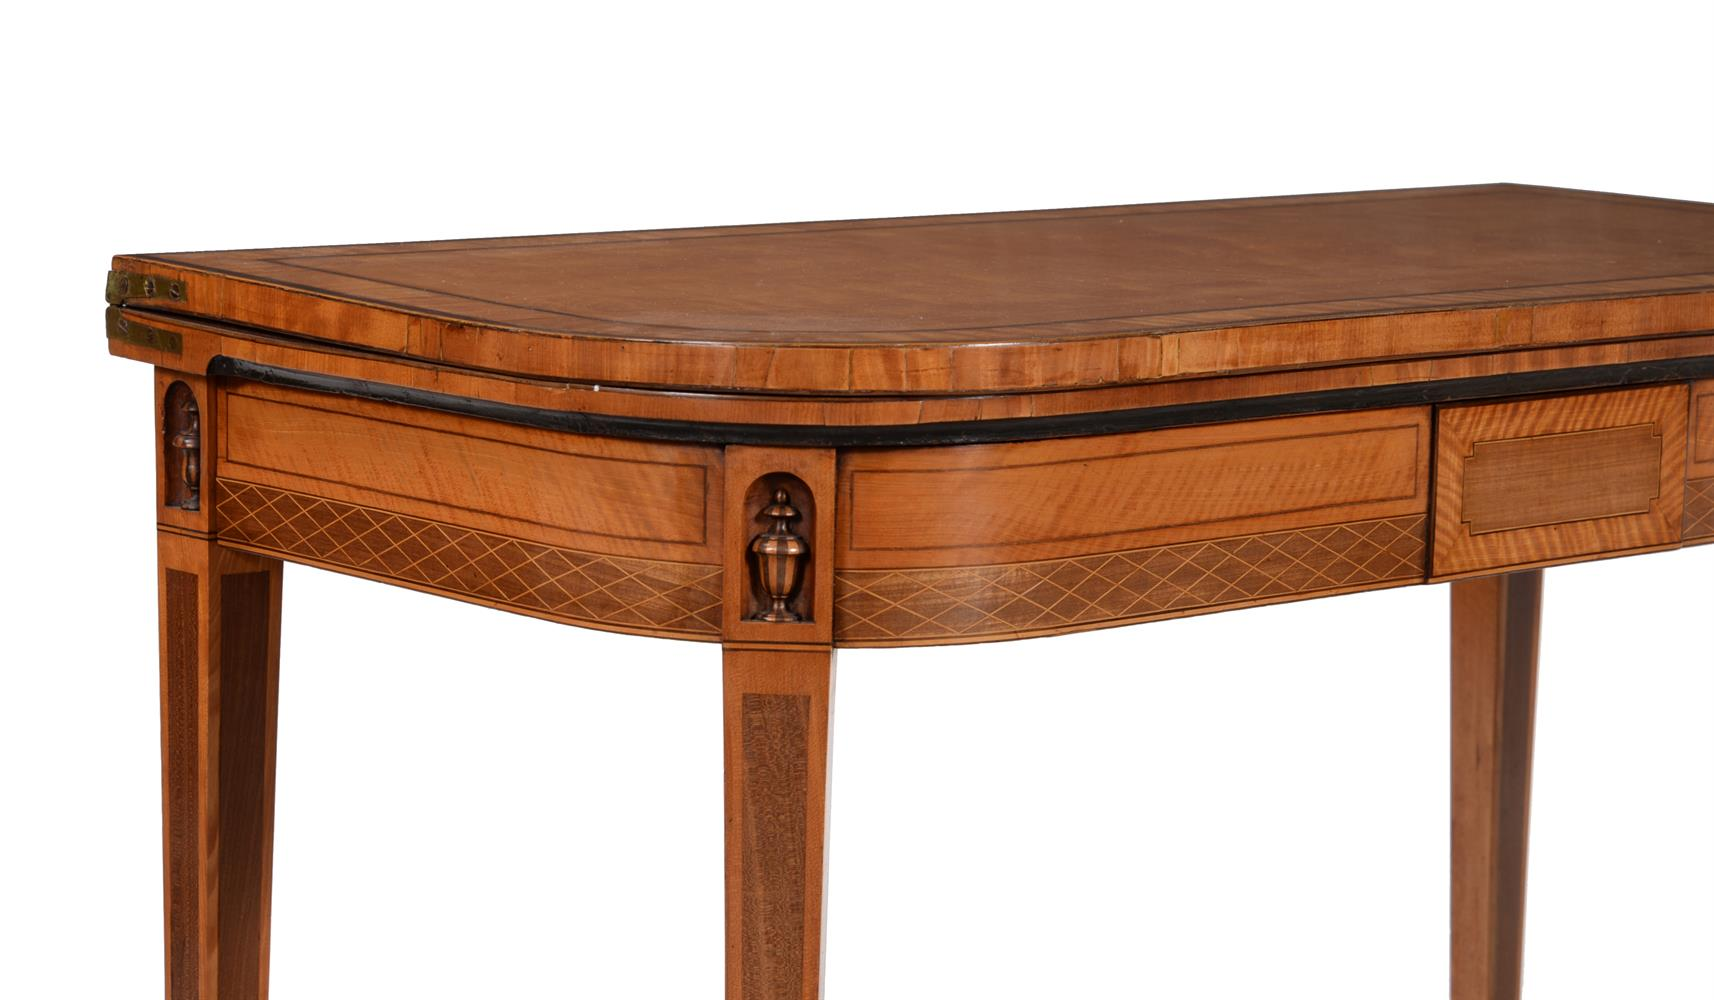 Y A GEORGE III SATINWOOD, TULIPWOOD AND PURPLE HEART BANDED FOLDING CARD TABLE, CIRCA 1790 - Image 2 of 6